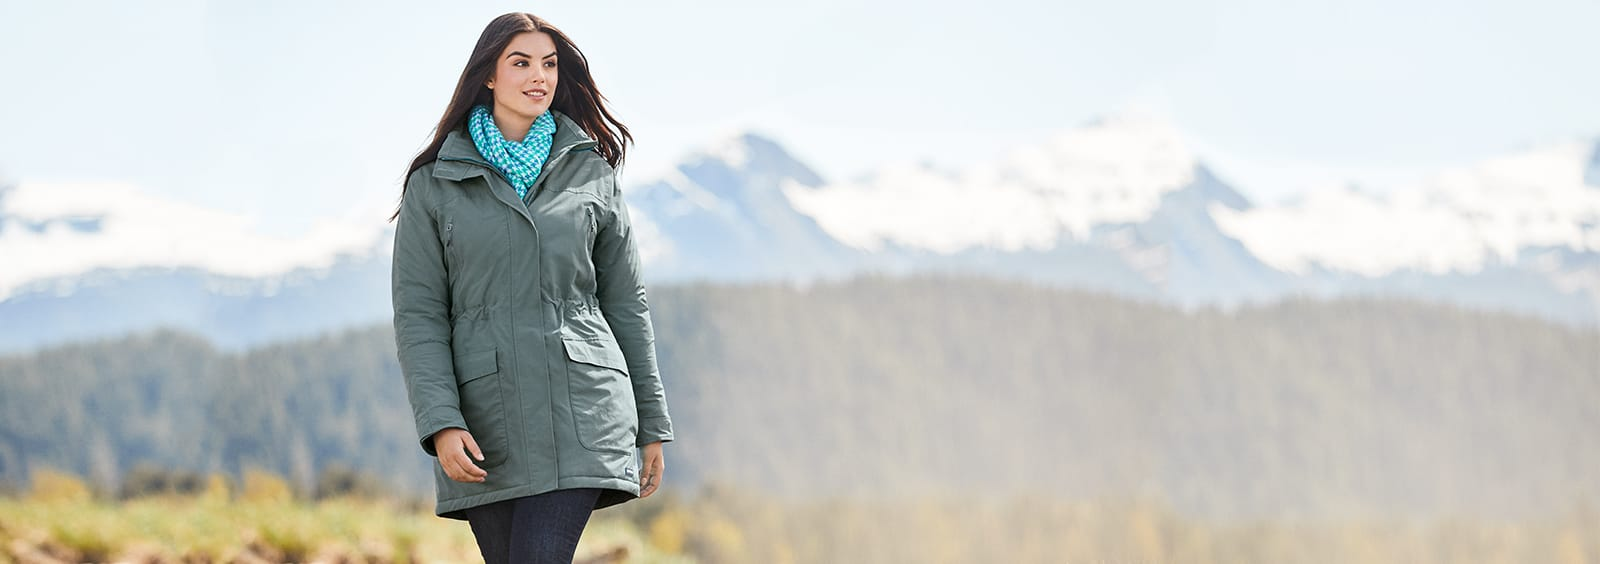 How to Style Your Plus-Size Winter Coats and Jackets This Fall